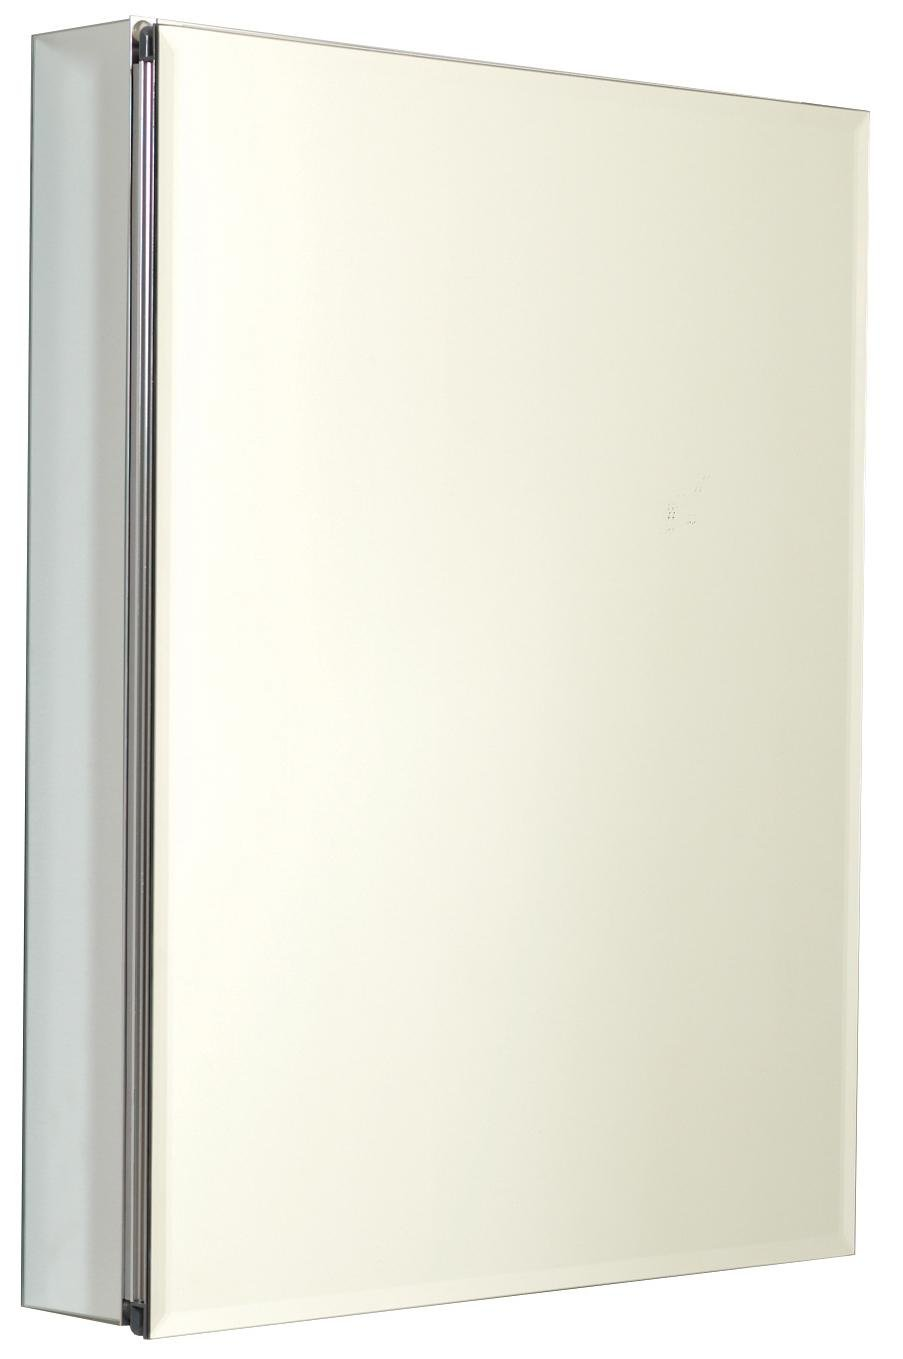 24 inch mirrored medicine cabinet. amazon.com: zenith mra2430, beveled mirror medicine cabinet, 24-inch, frameless: home \u0026 kitchen 24 inch mirrored cabinet s